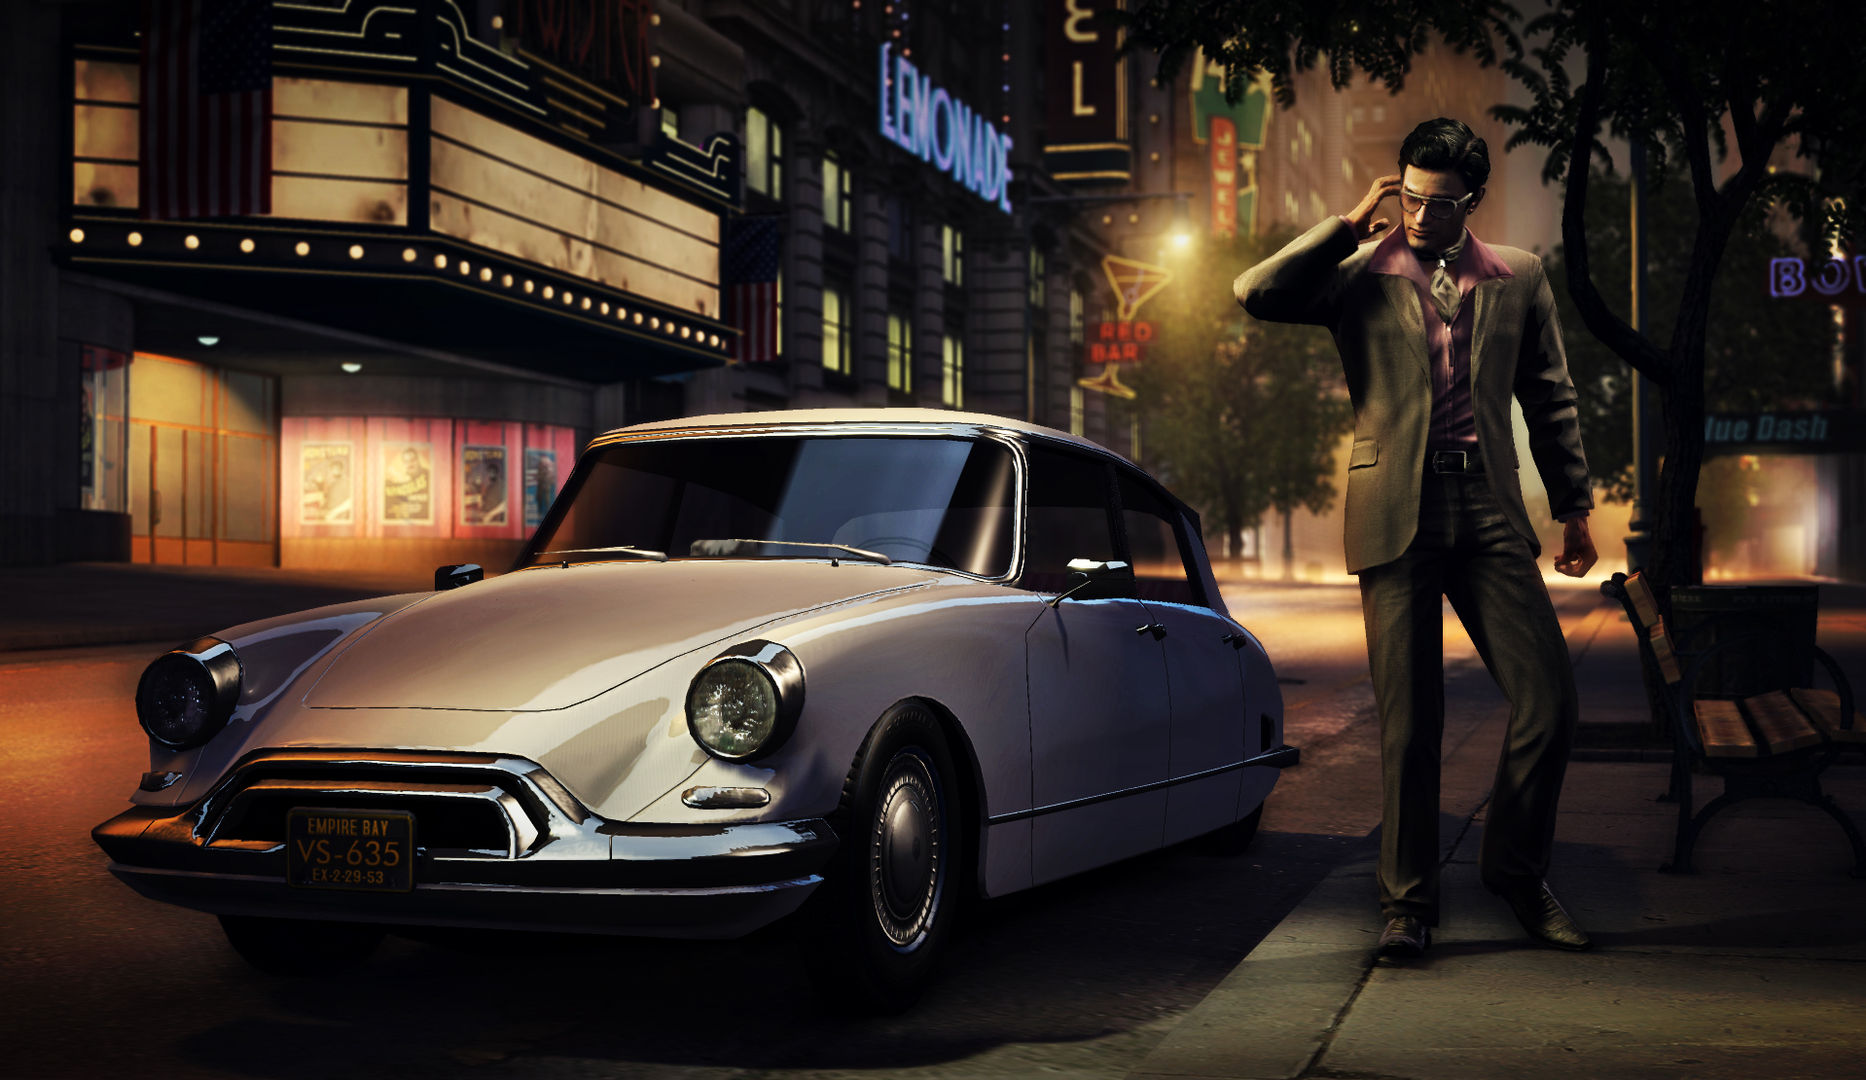 Buy Mafia 2 key | DLCompare.com